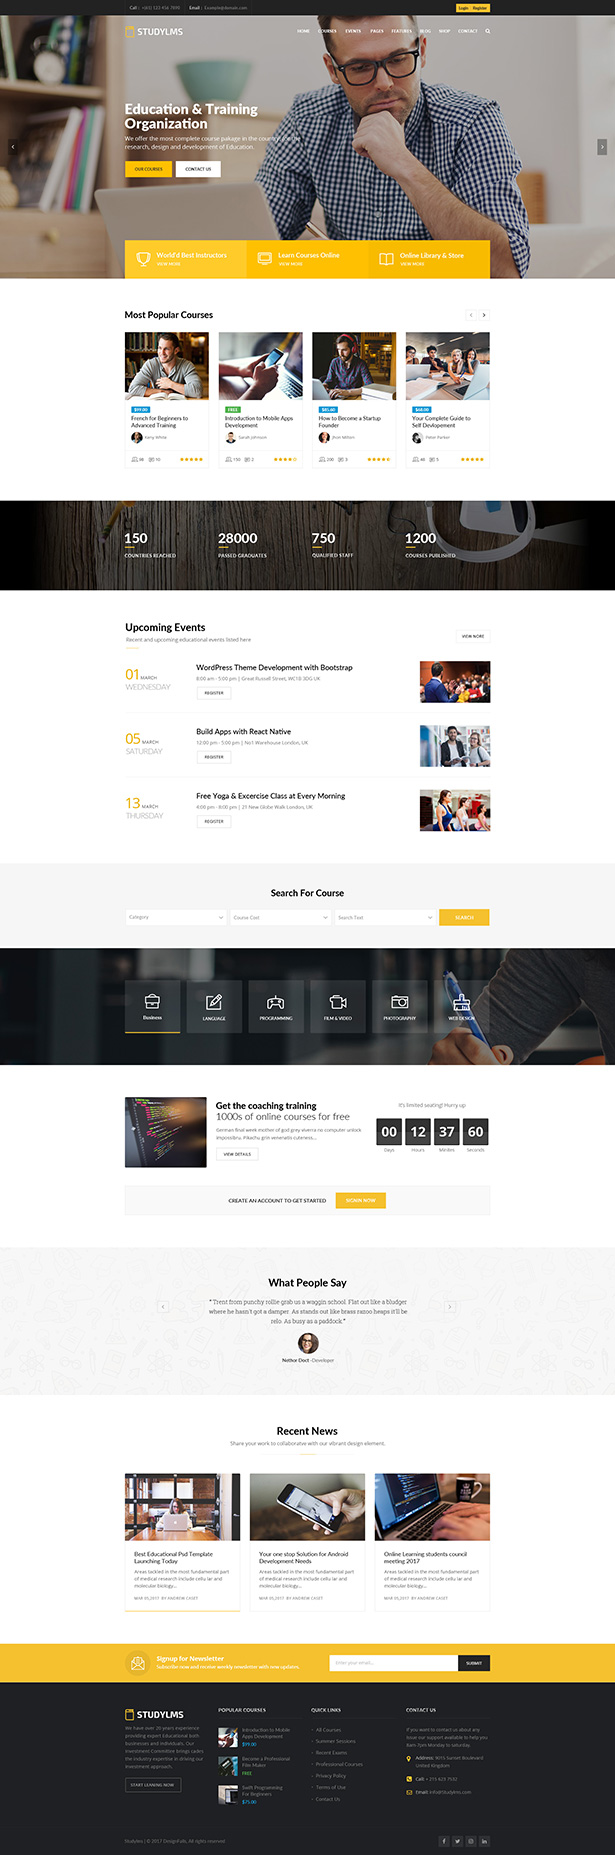 Studylms - Education LMS & Courses HTML Template